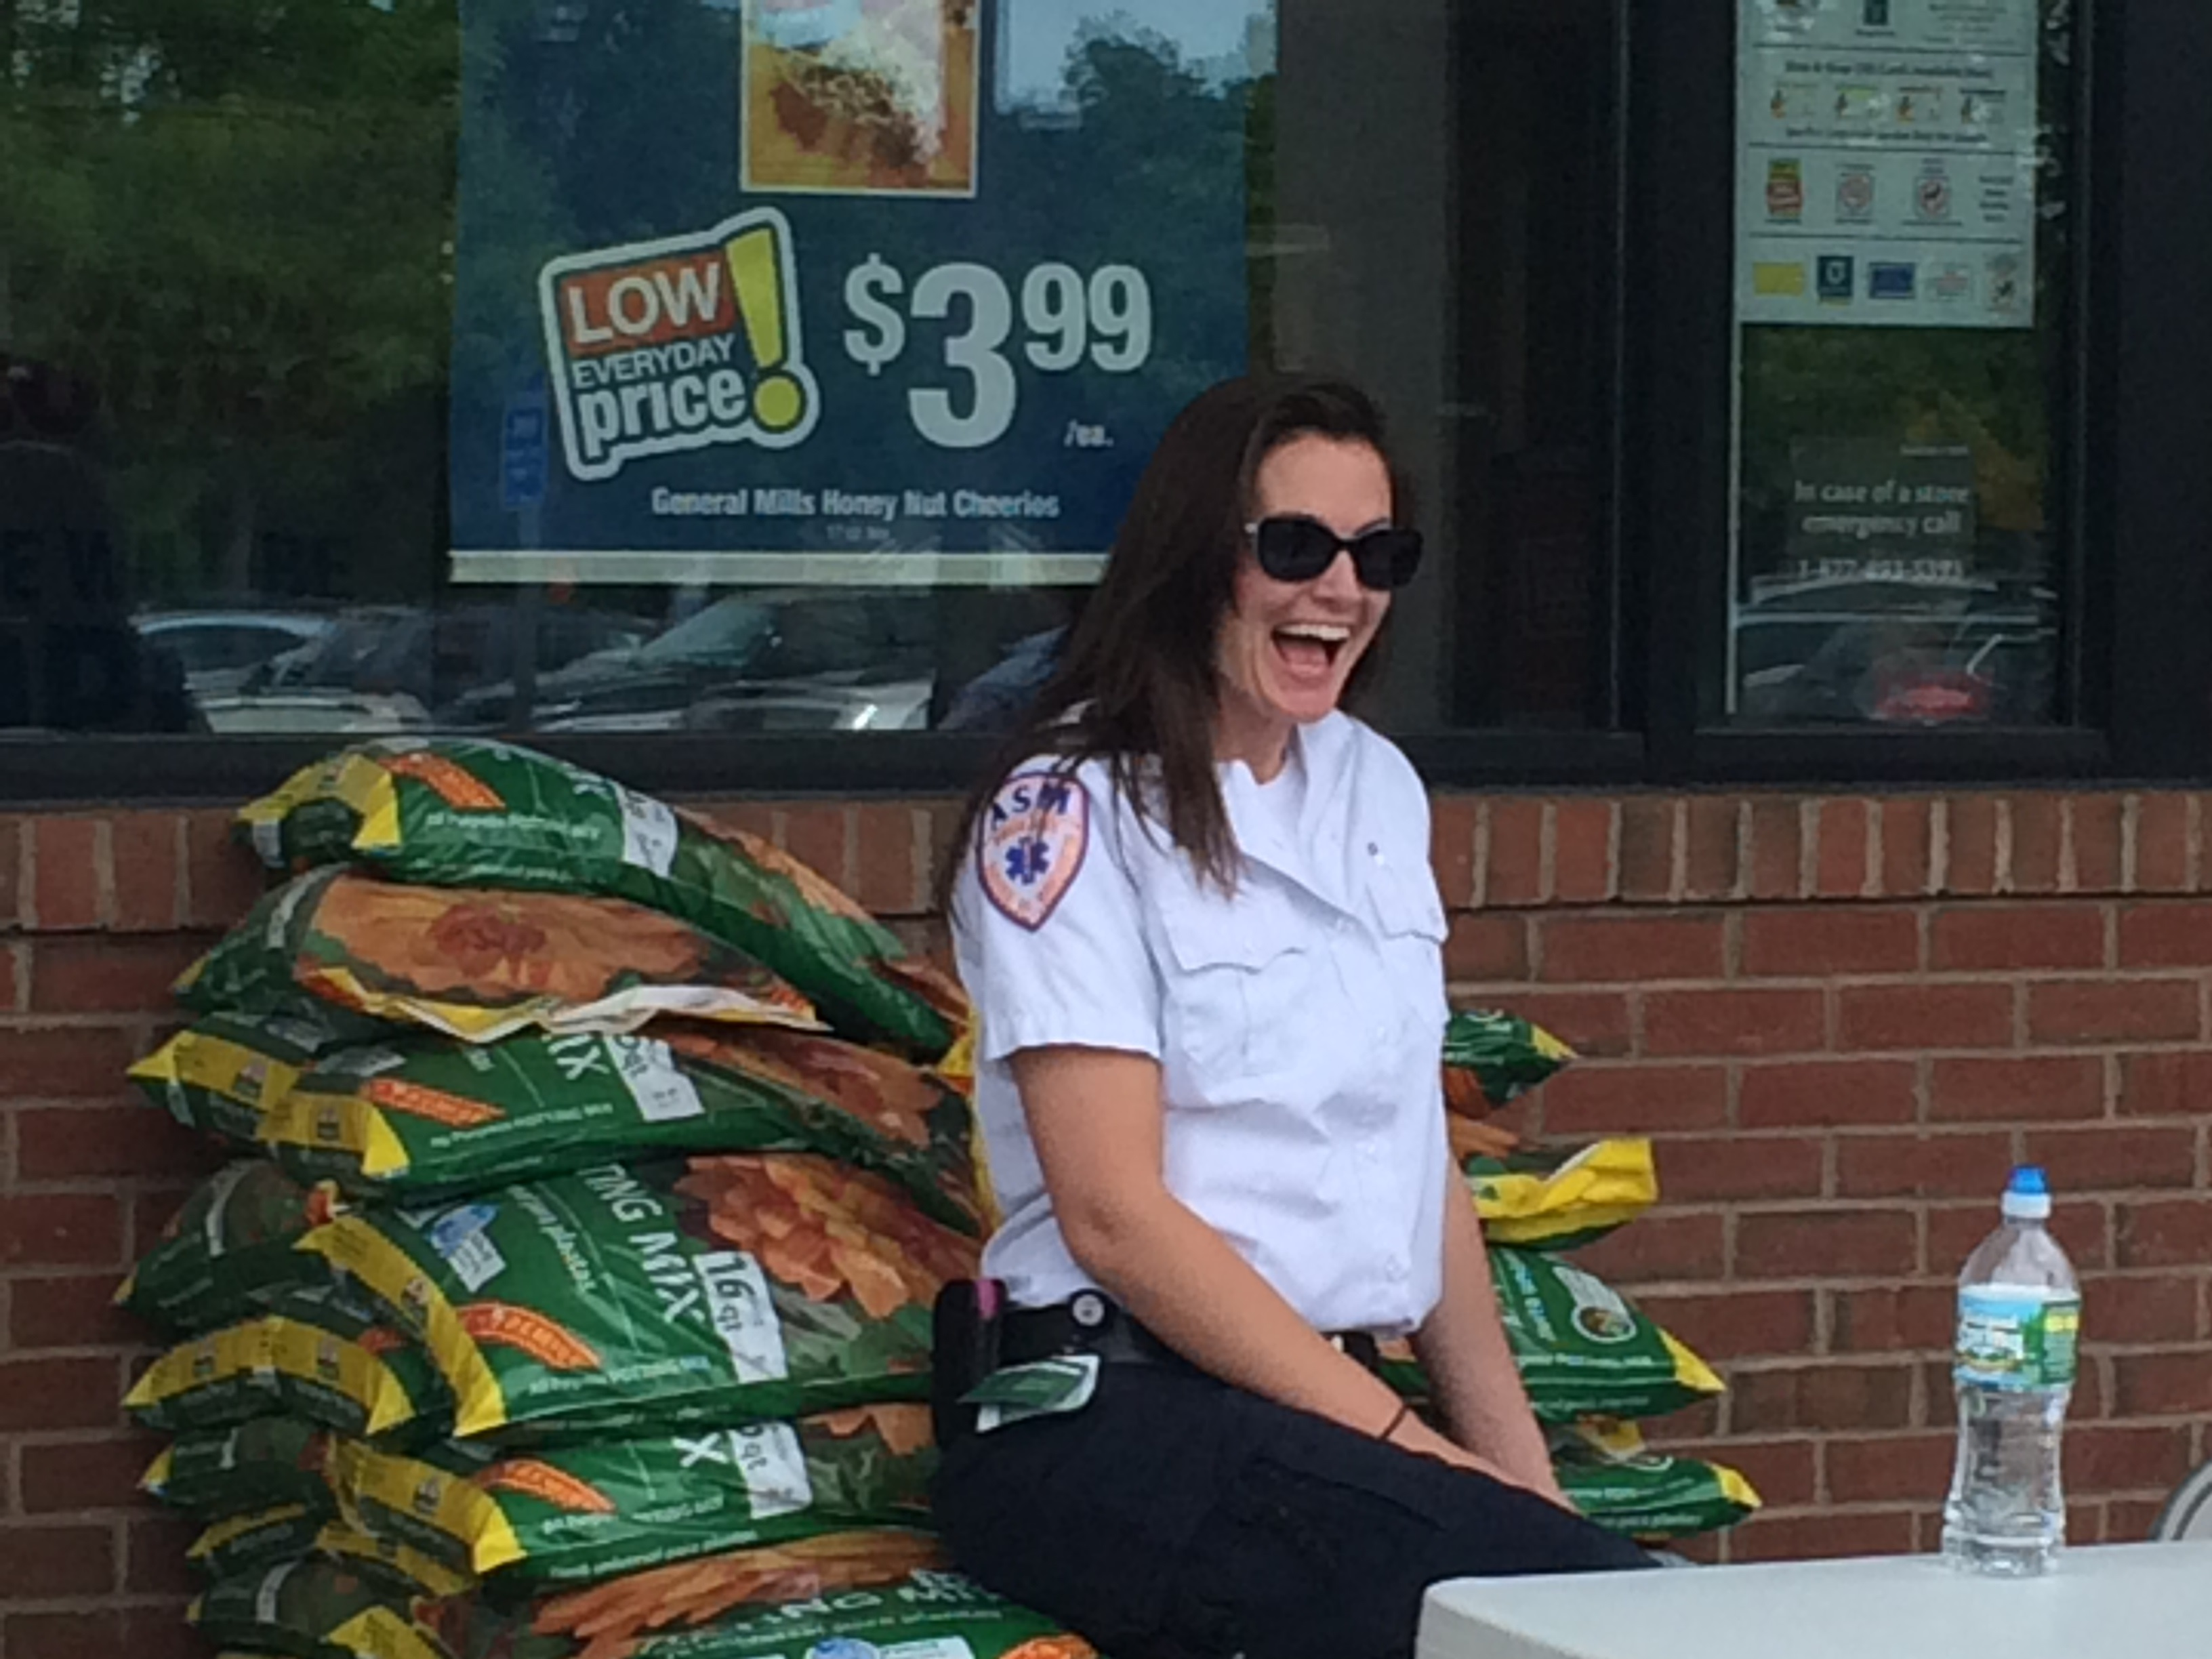 ASM Participates in Weekend Food Drive in South Windsor